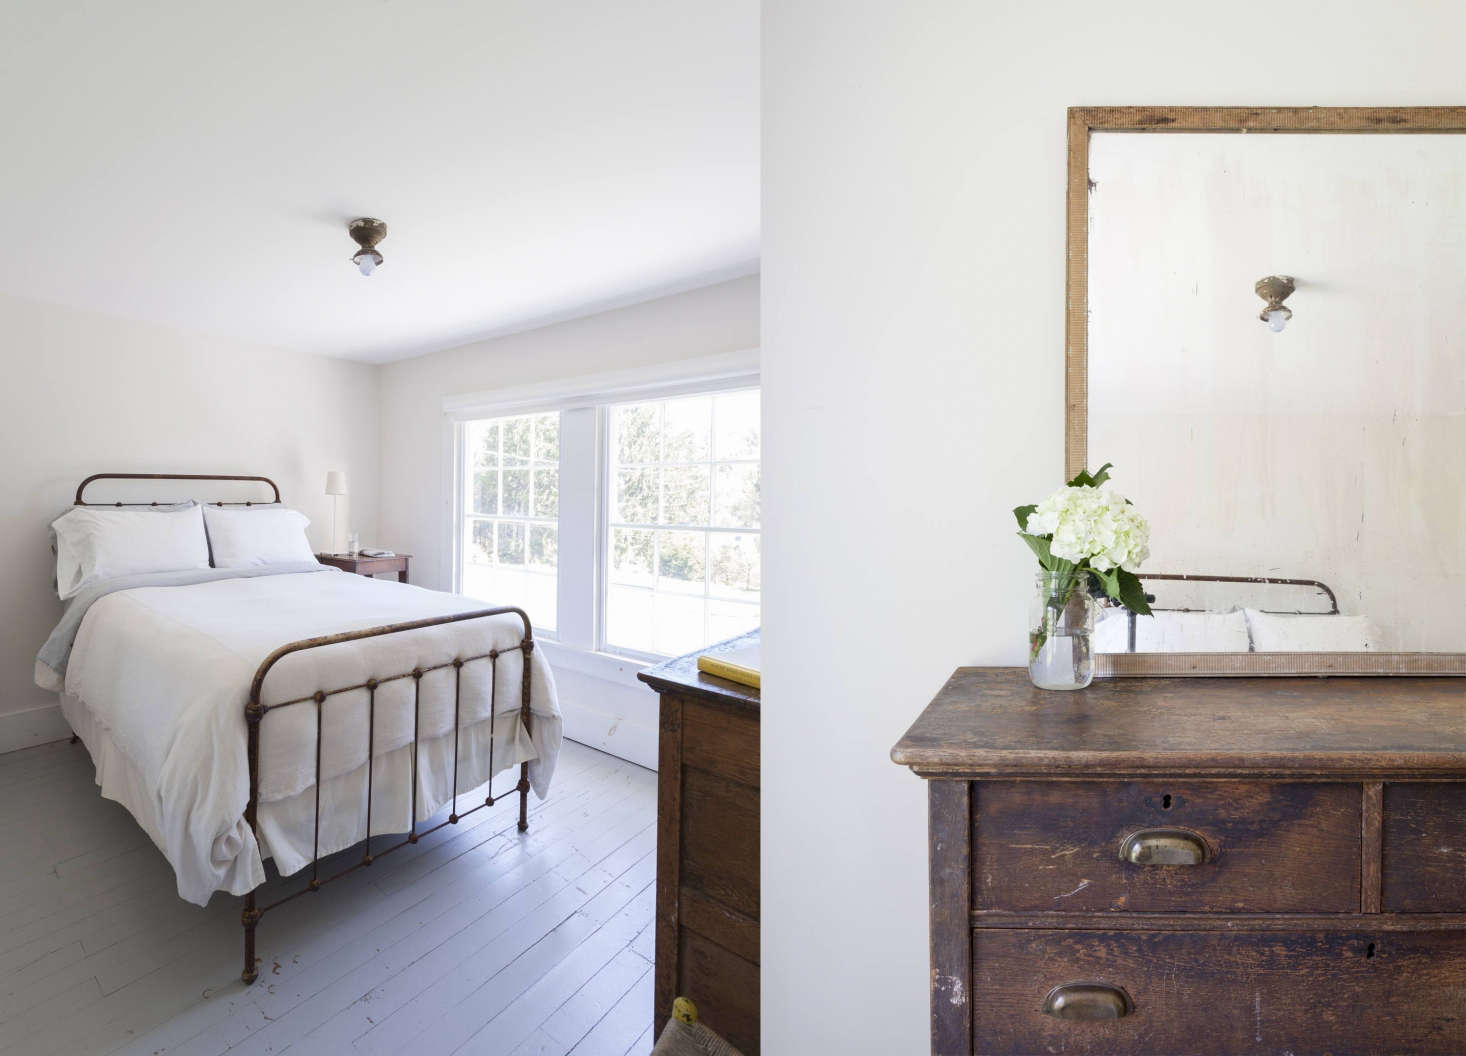 An old cast-iron bed frame and a minimalist layout in a farmhouse bedroom. The windows have their original wavy glass.